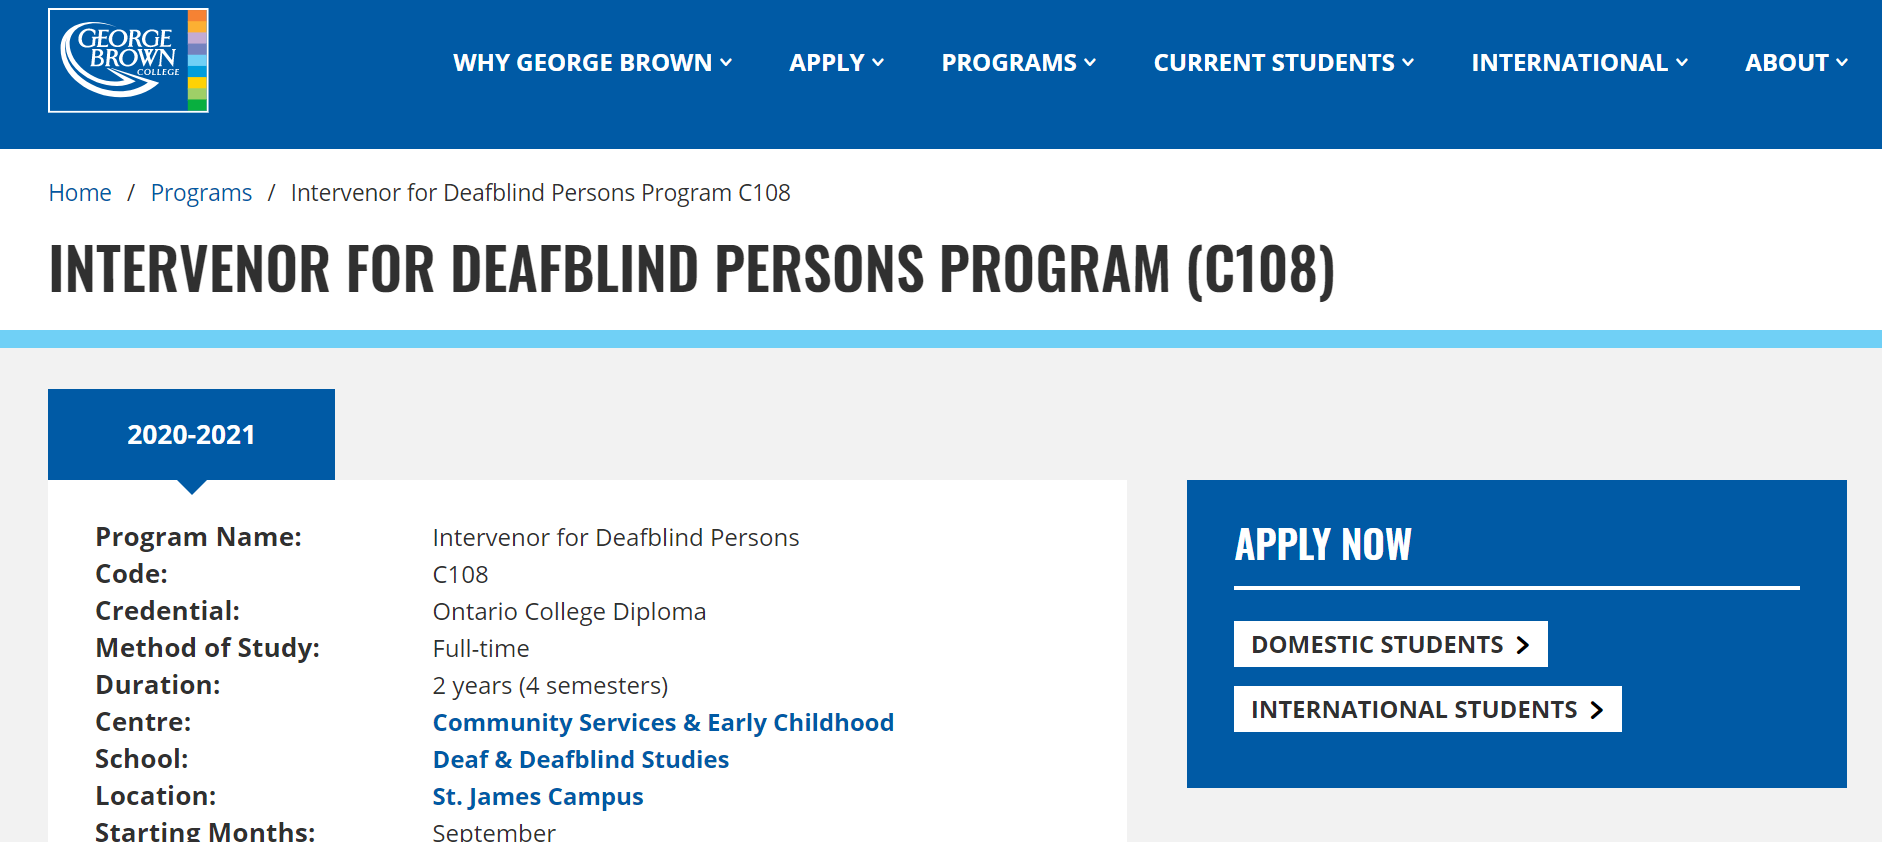 Screenshot of the George Brown University listing for their Intervenor for Deafblind Program